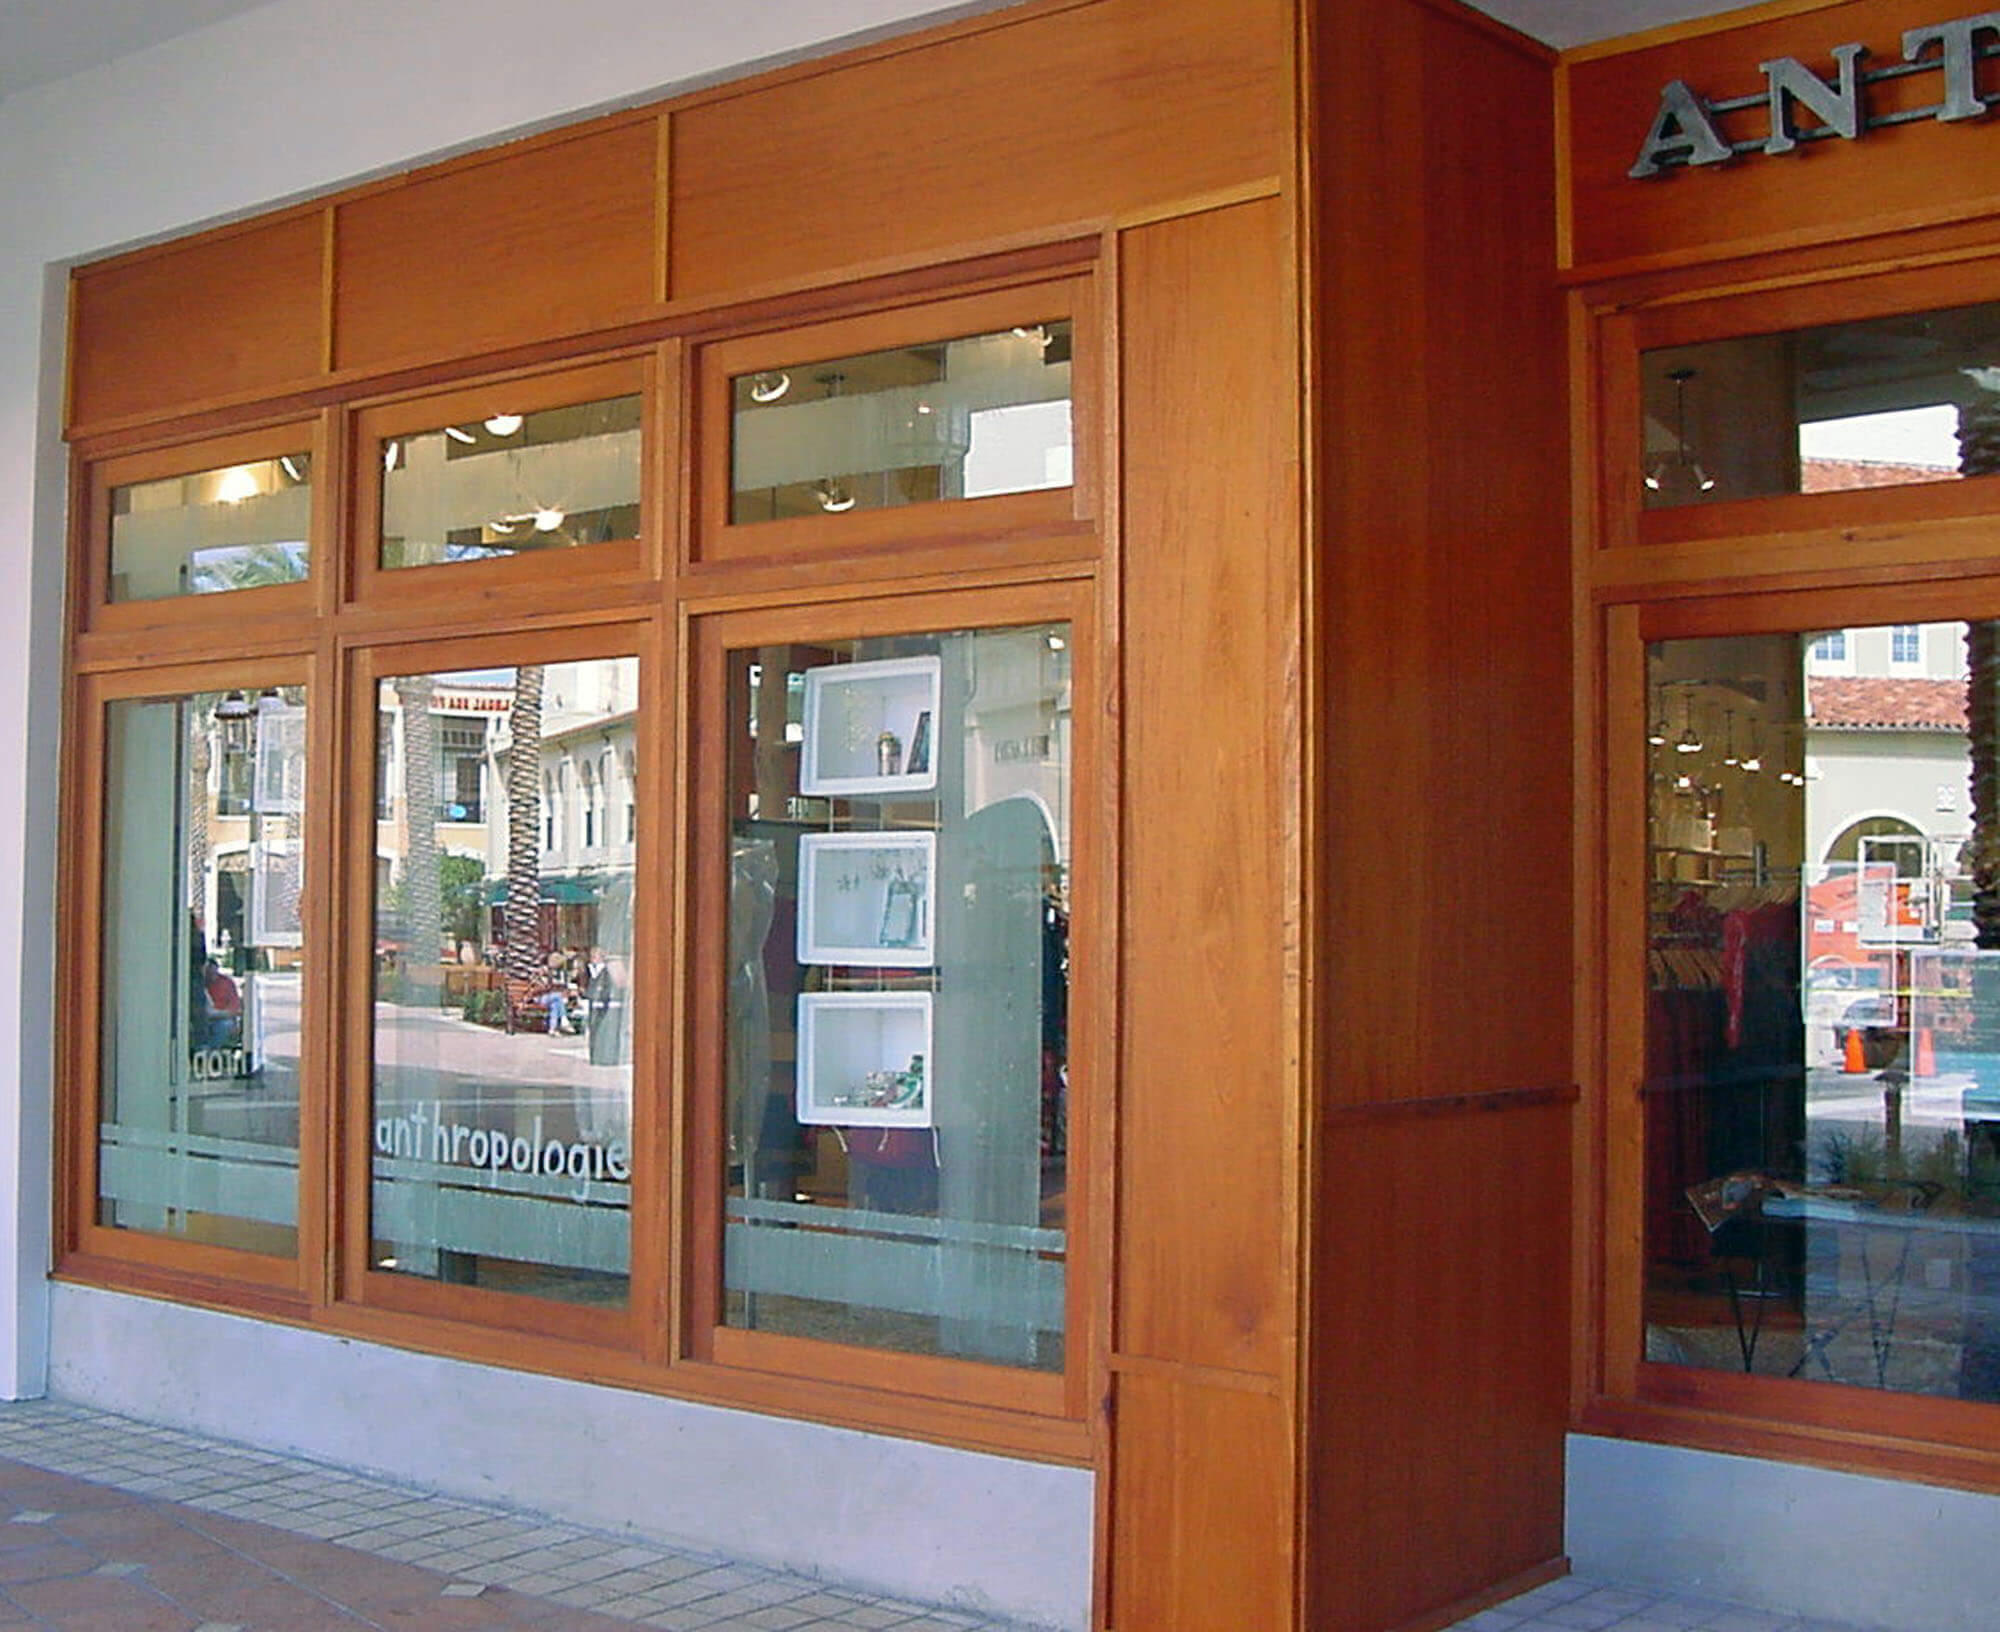 ANTROPOLOGIE STORE FRONT WINDOWS.